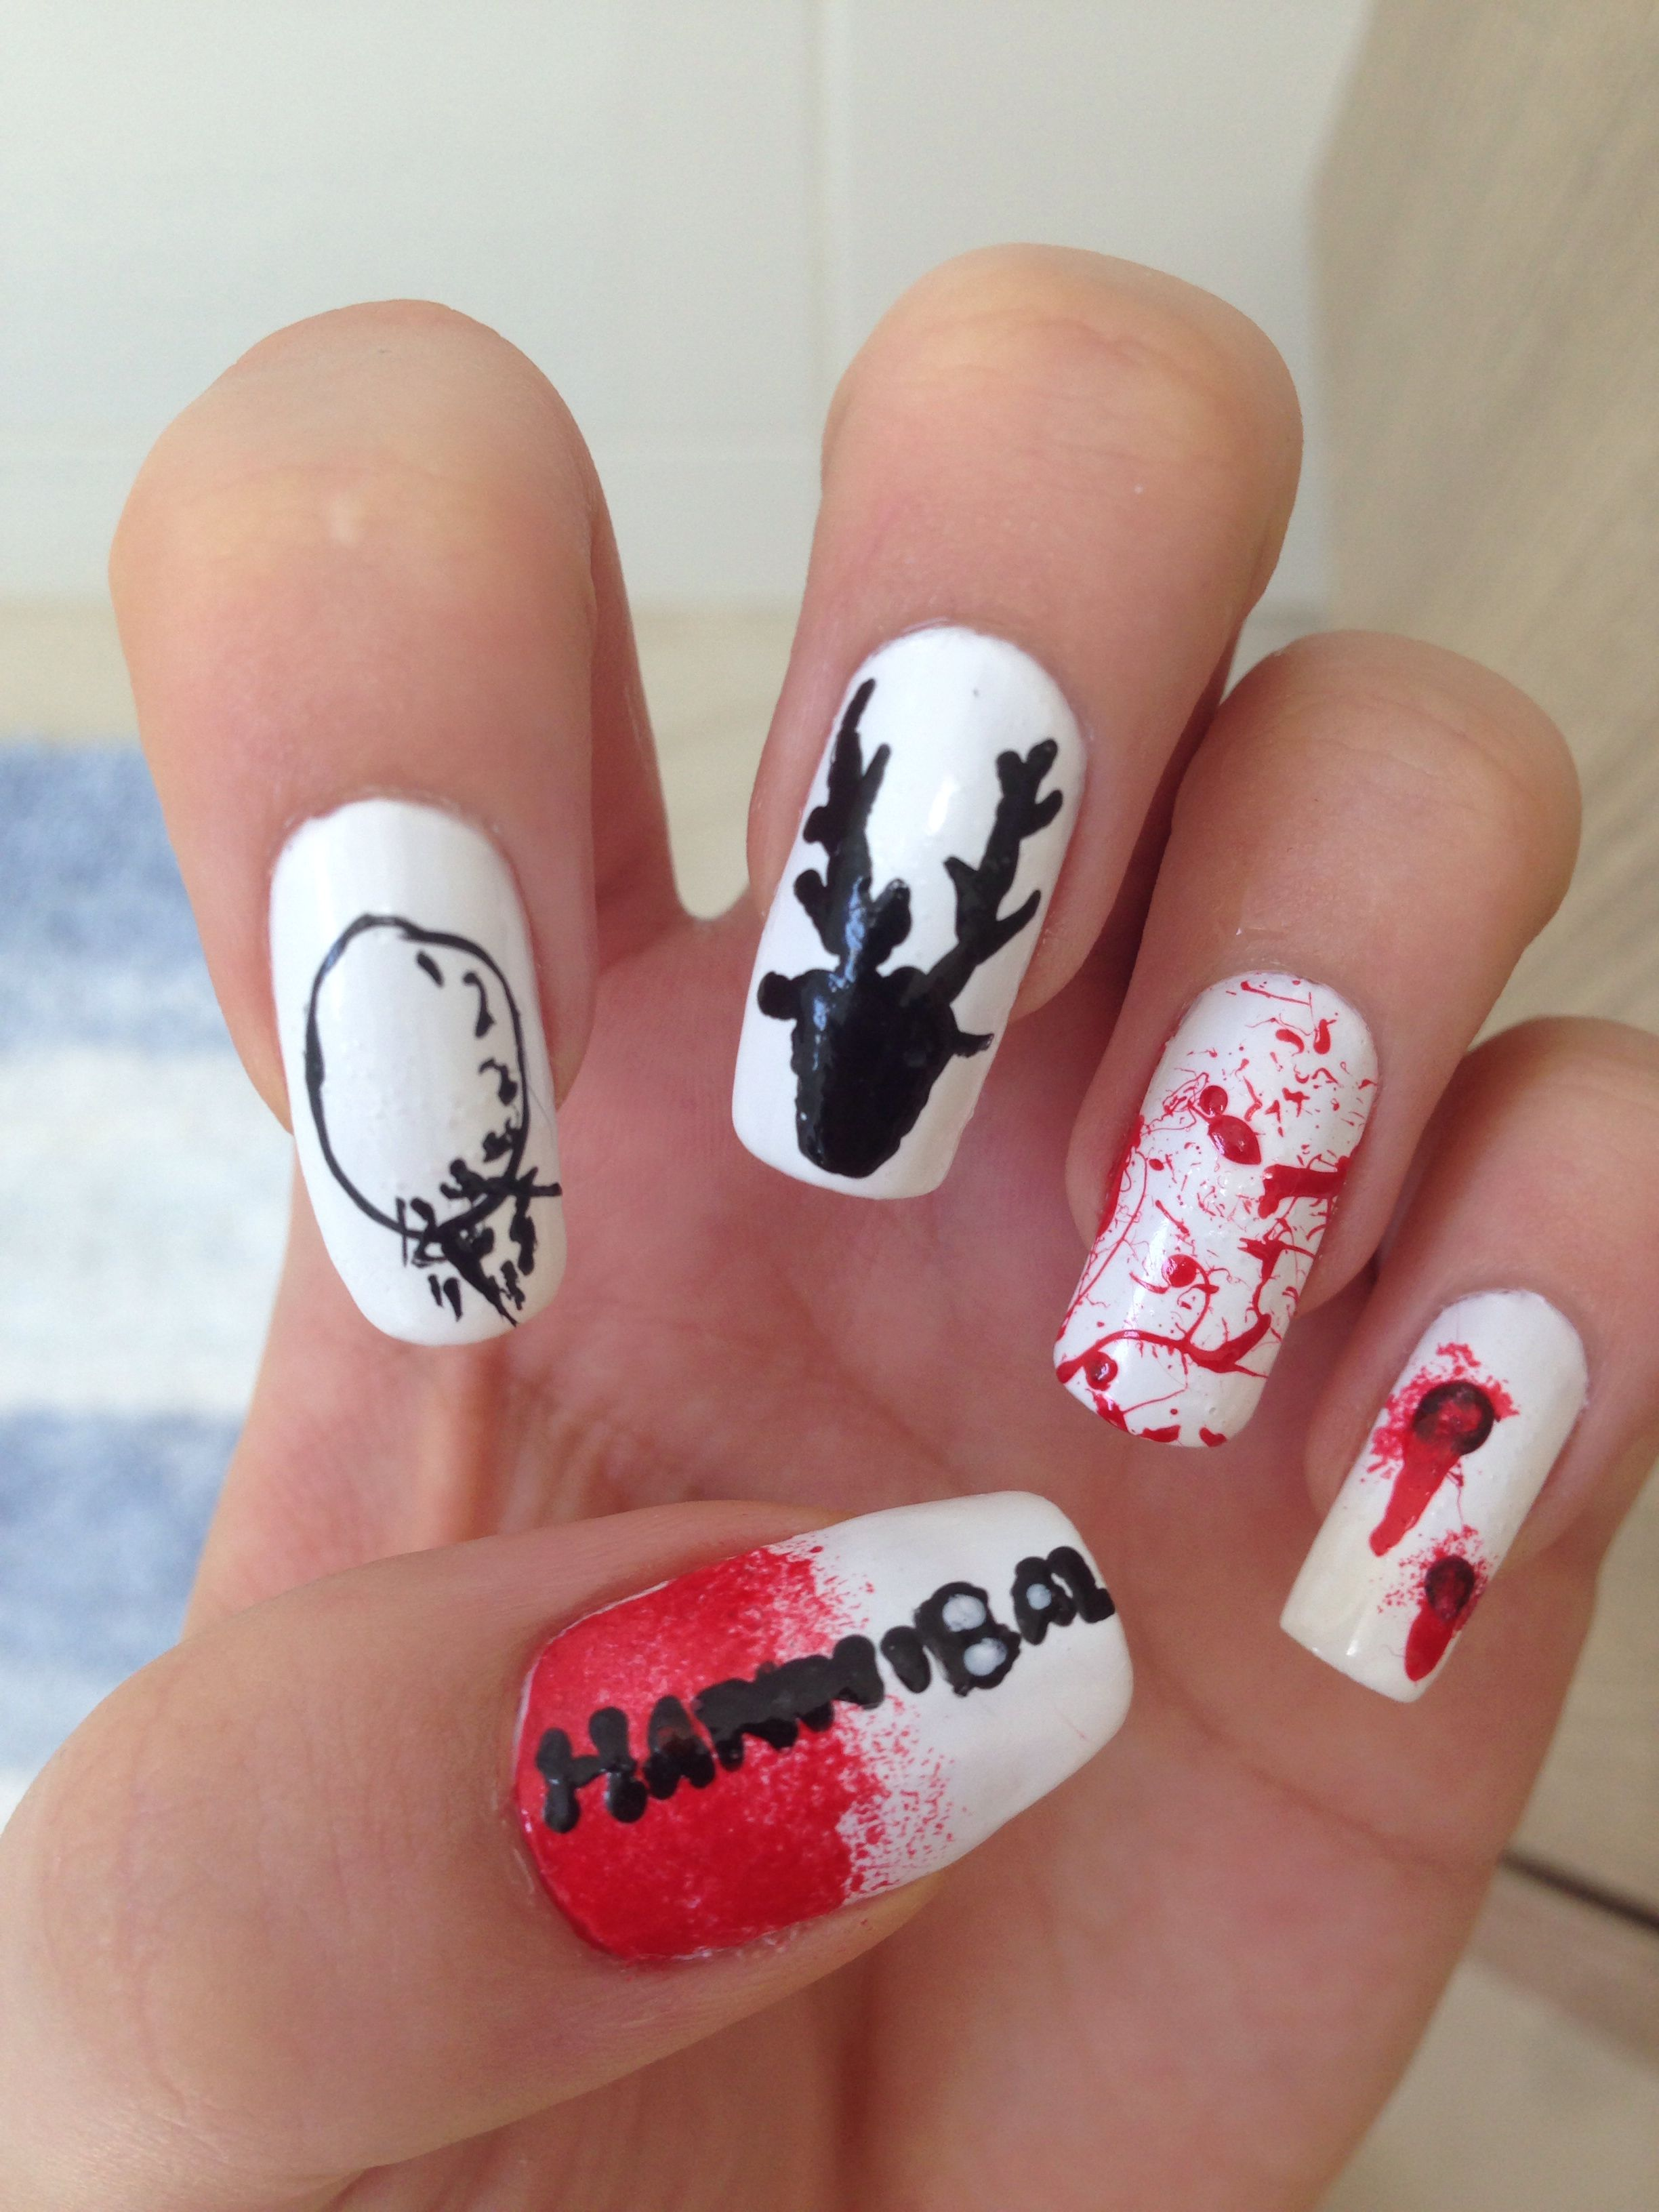 Hannibal nails | Nail art | Pinterest